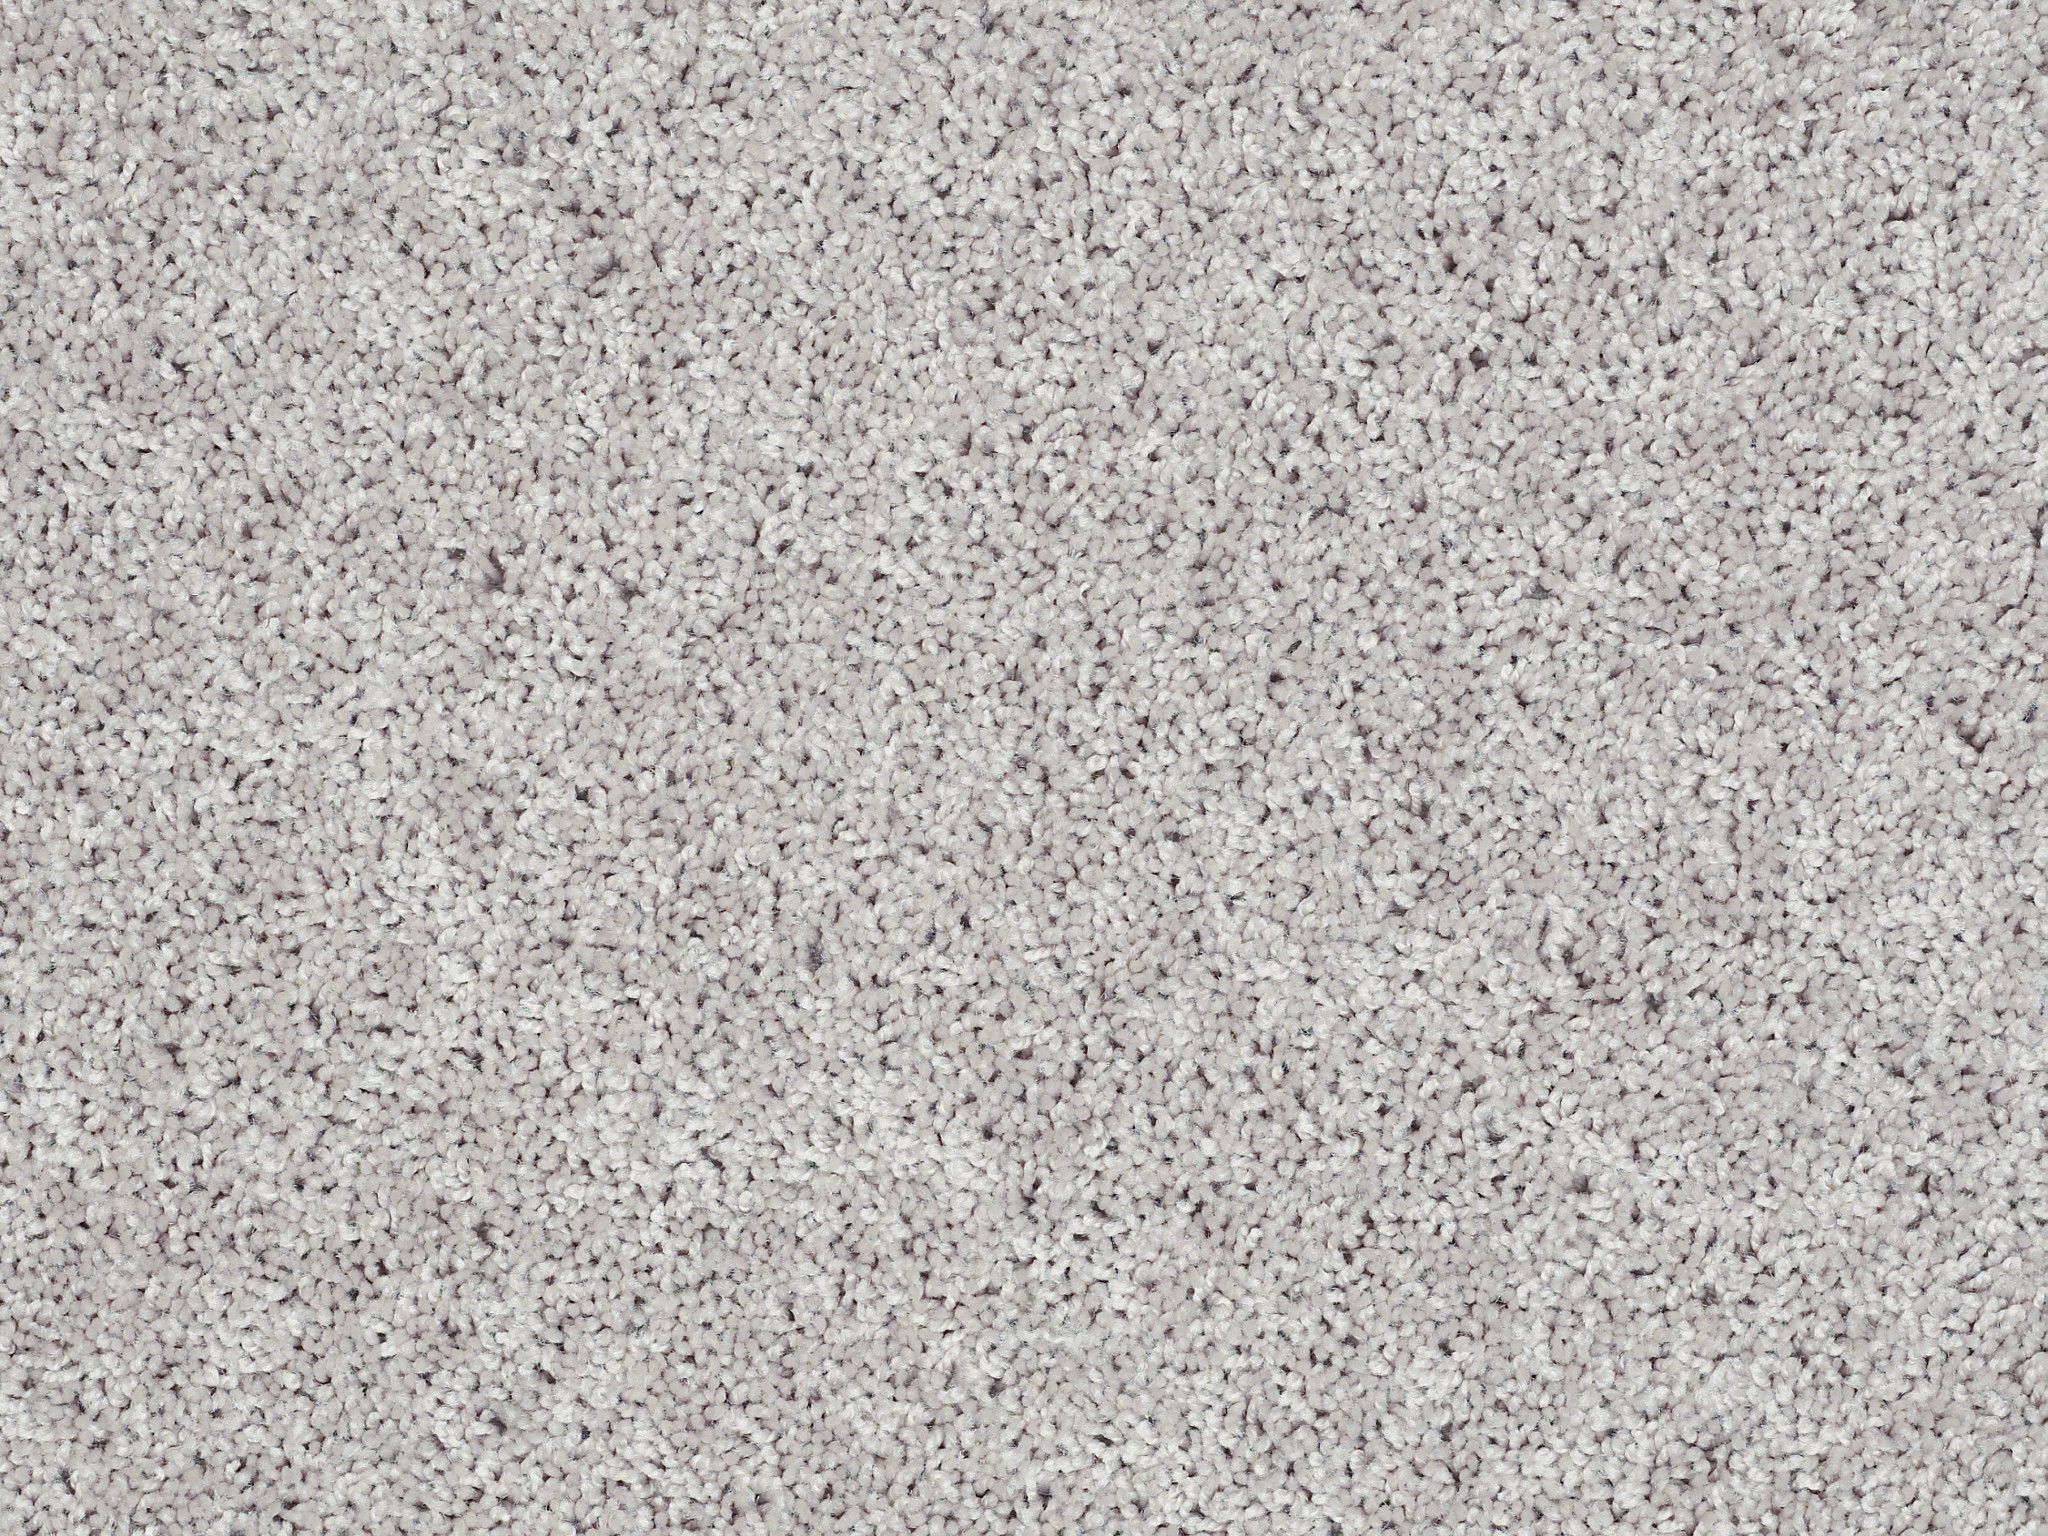 Bungalow (S) Carpet - Cool Taupe Zoomed Swatch Image